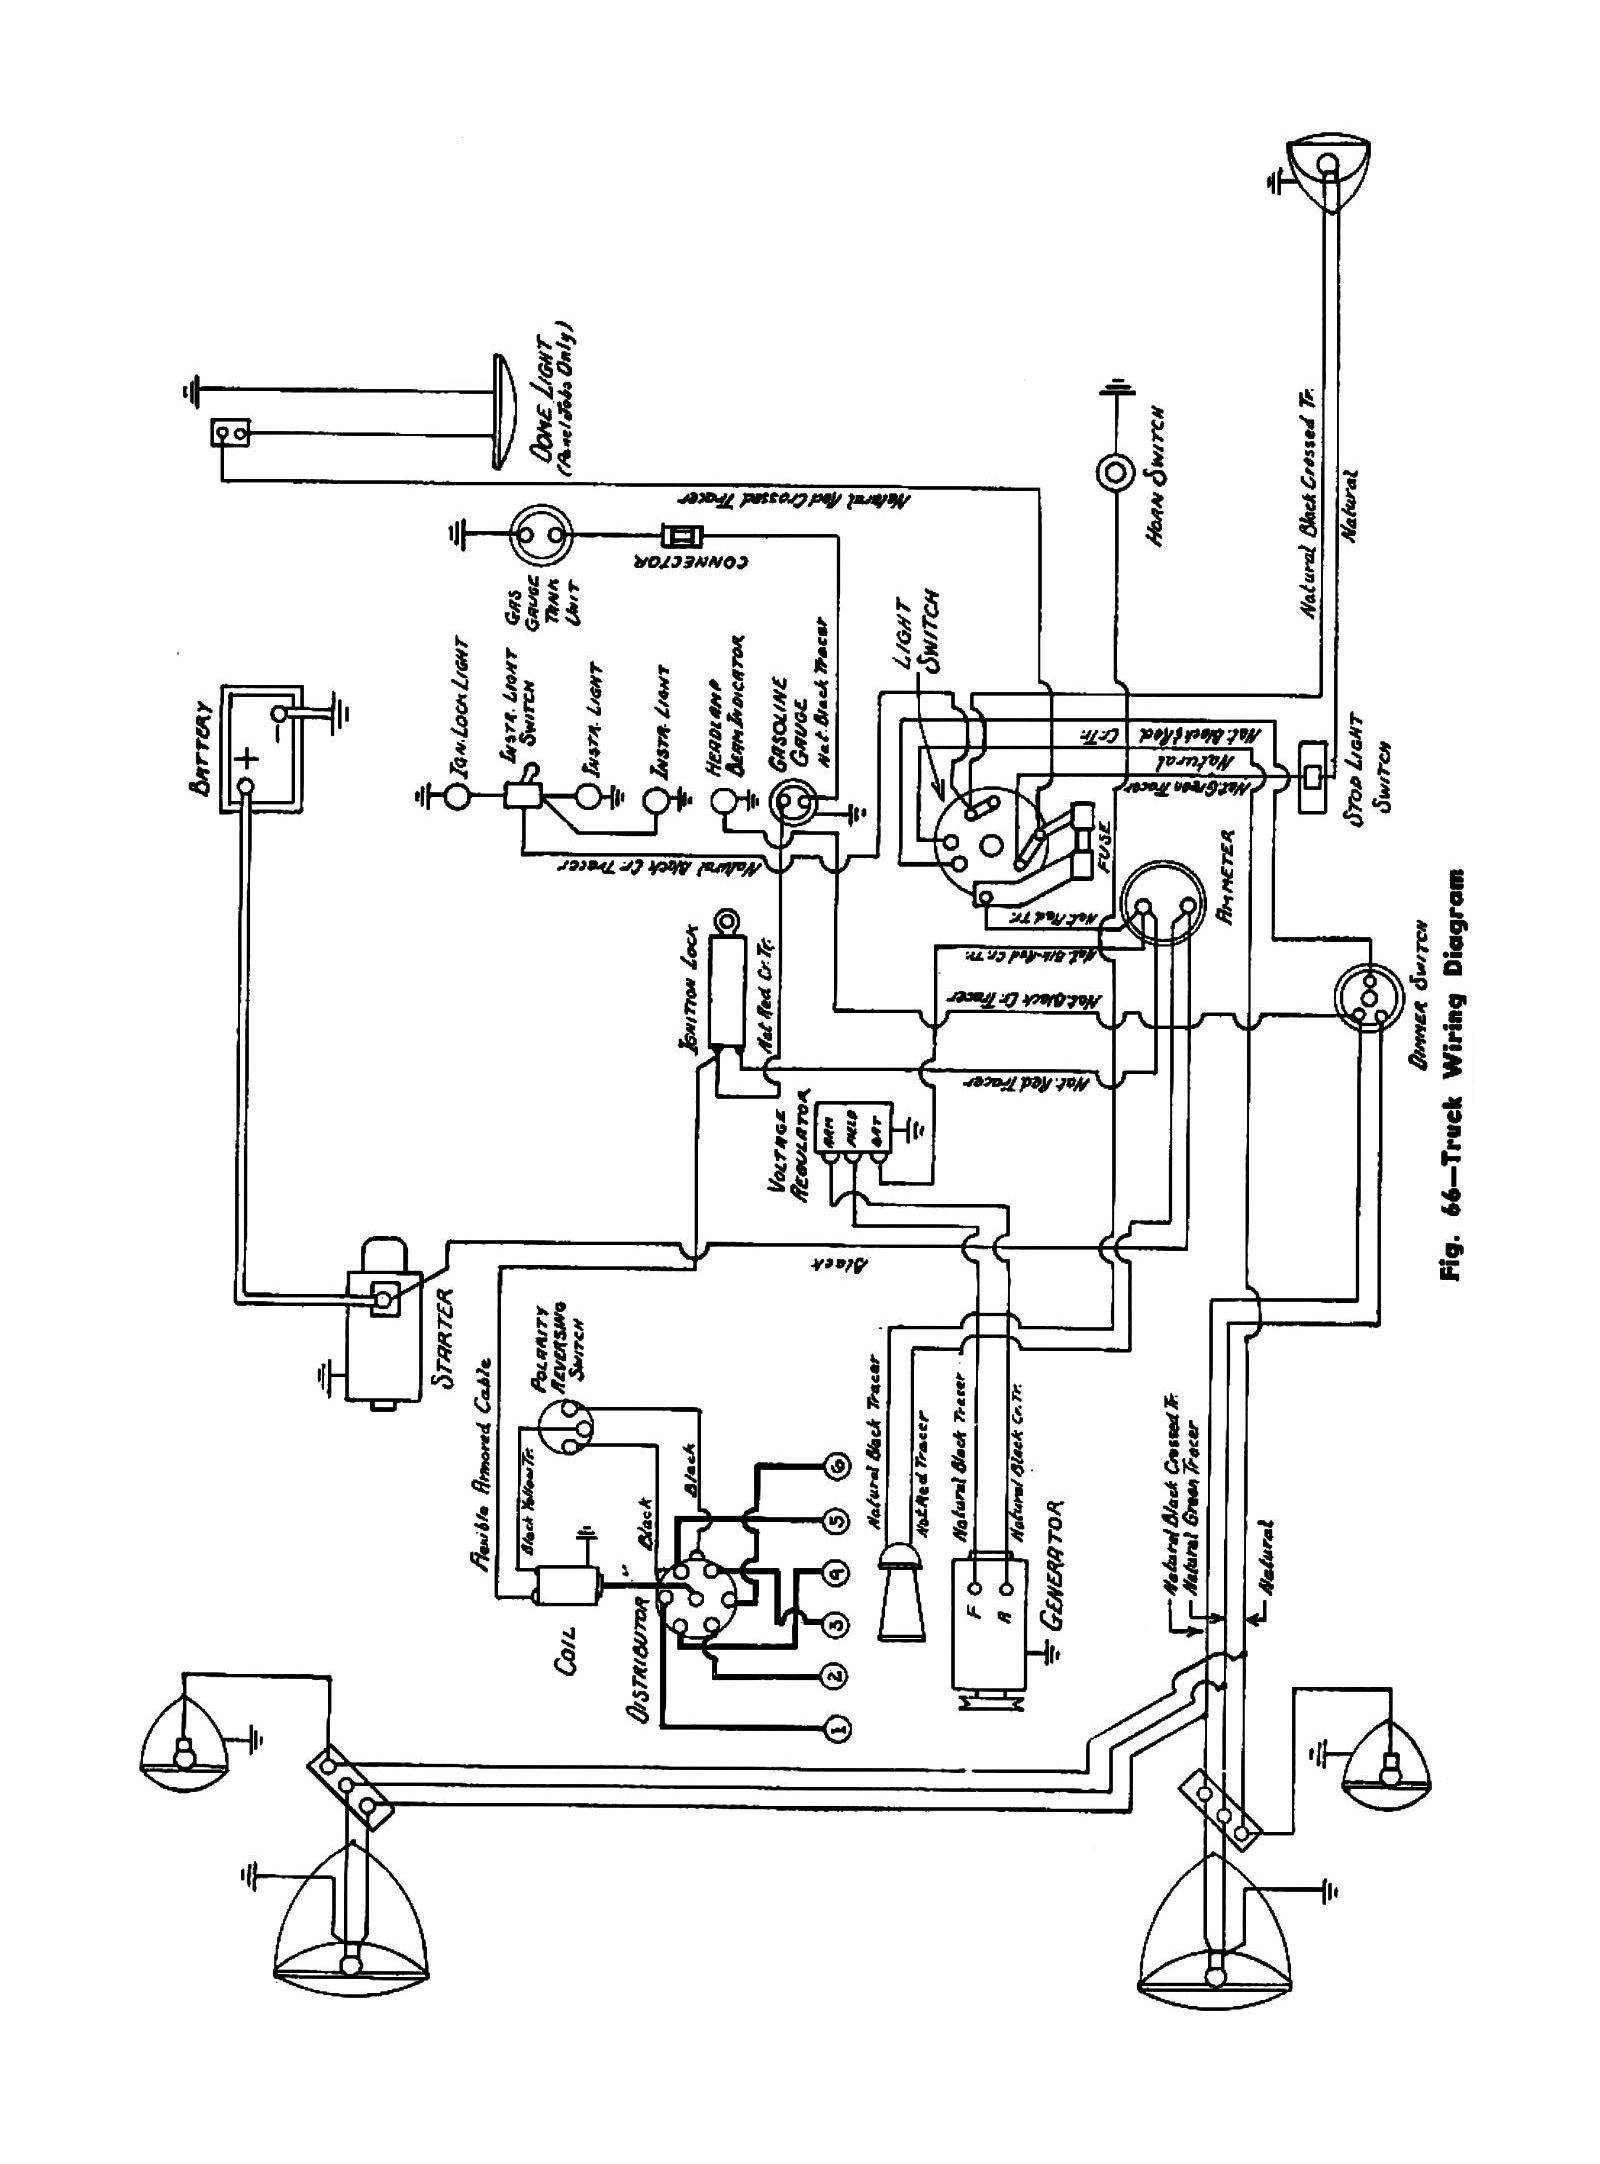 45truck chevy wiring diagrams international truck wiring diagram schematic at edmiracle.co